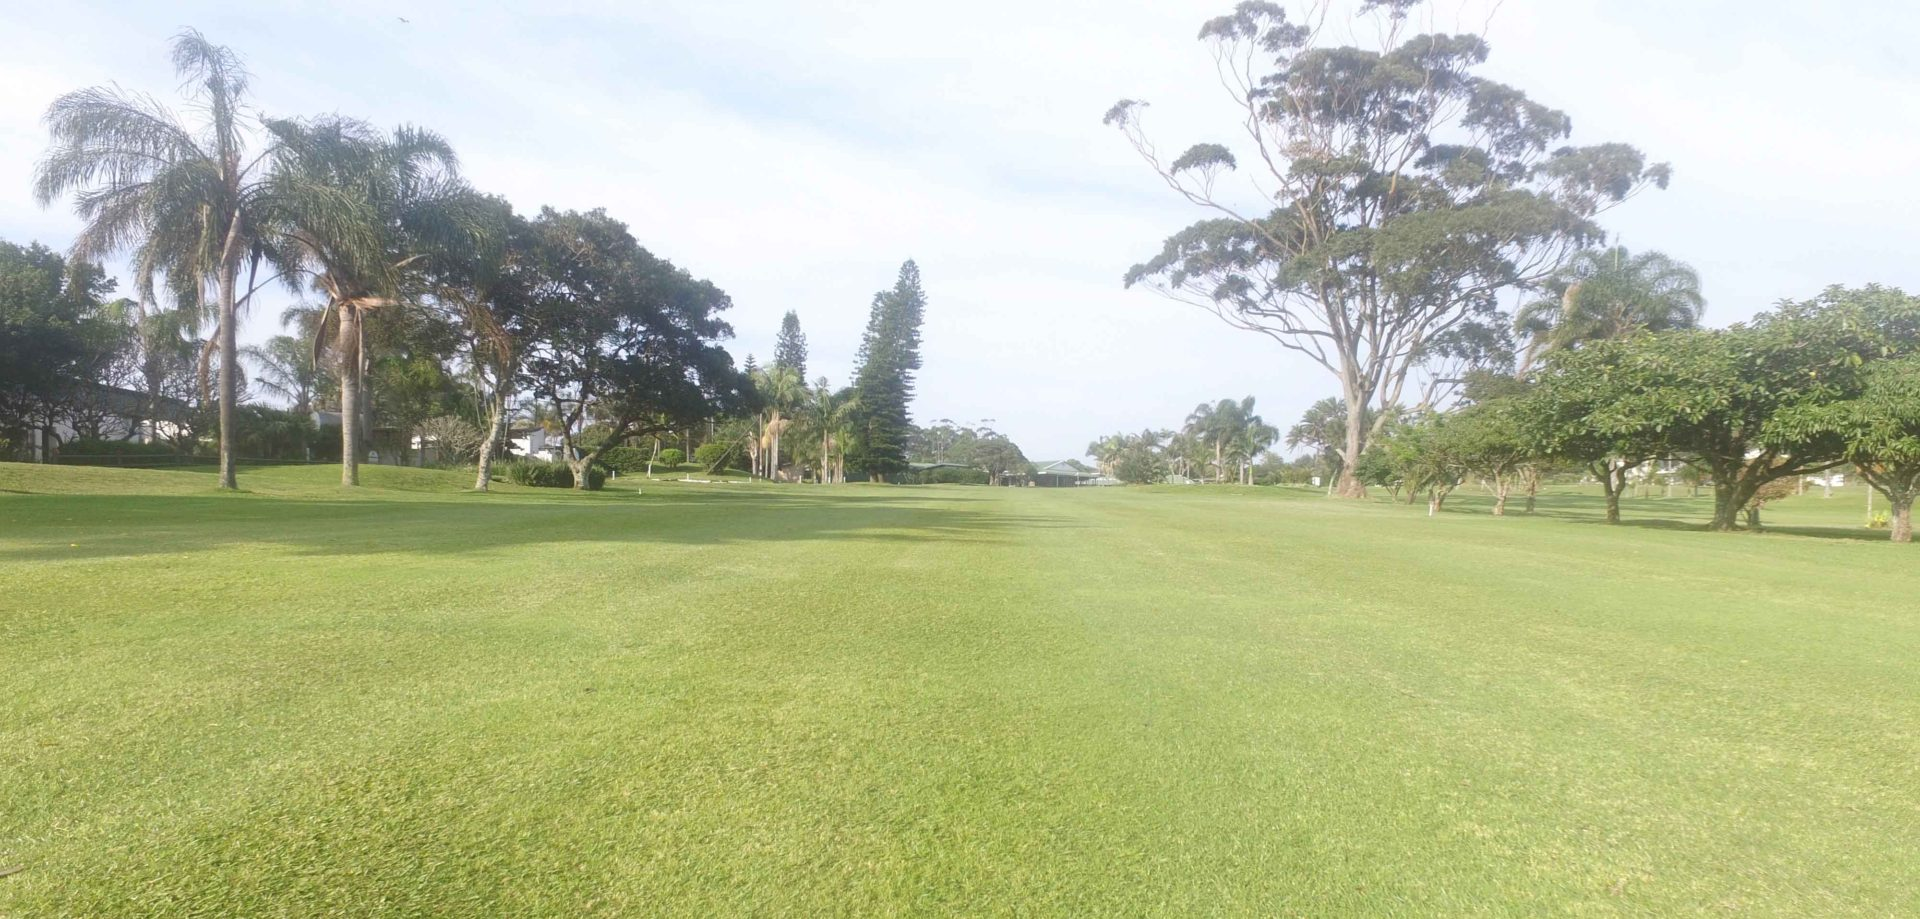 Margate Country Club – Golf and bowls on the KZN South Coast